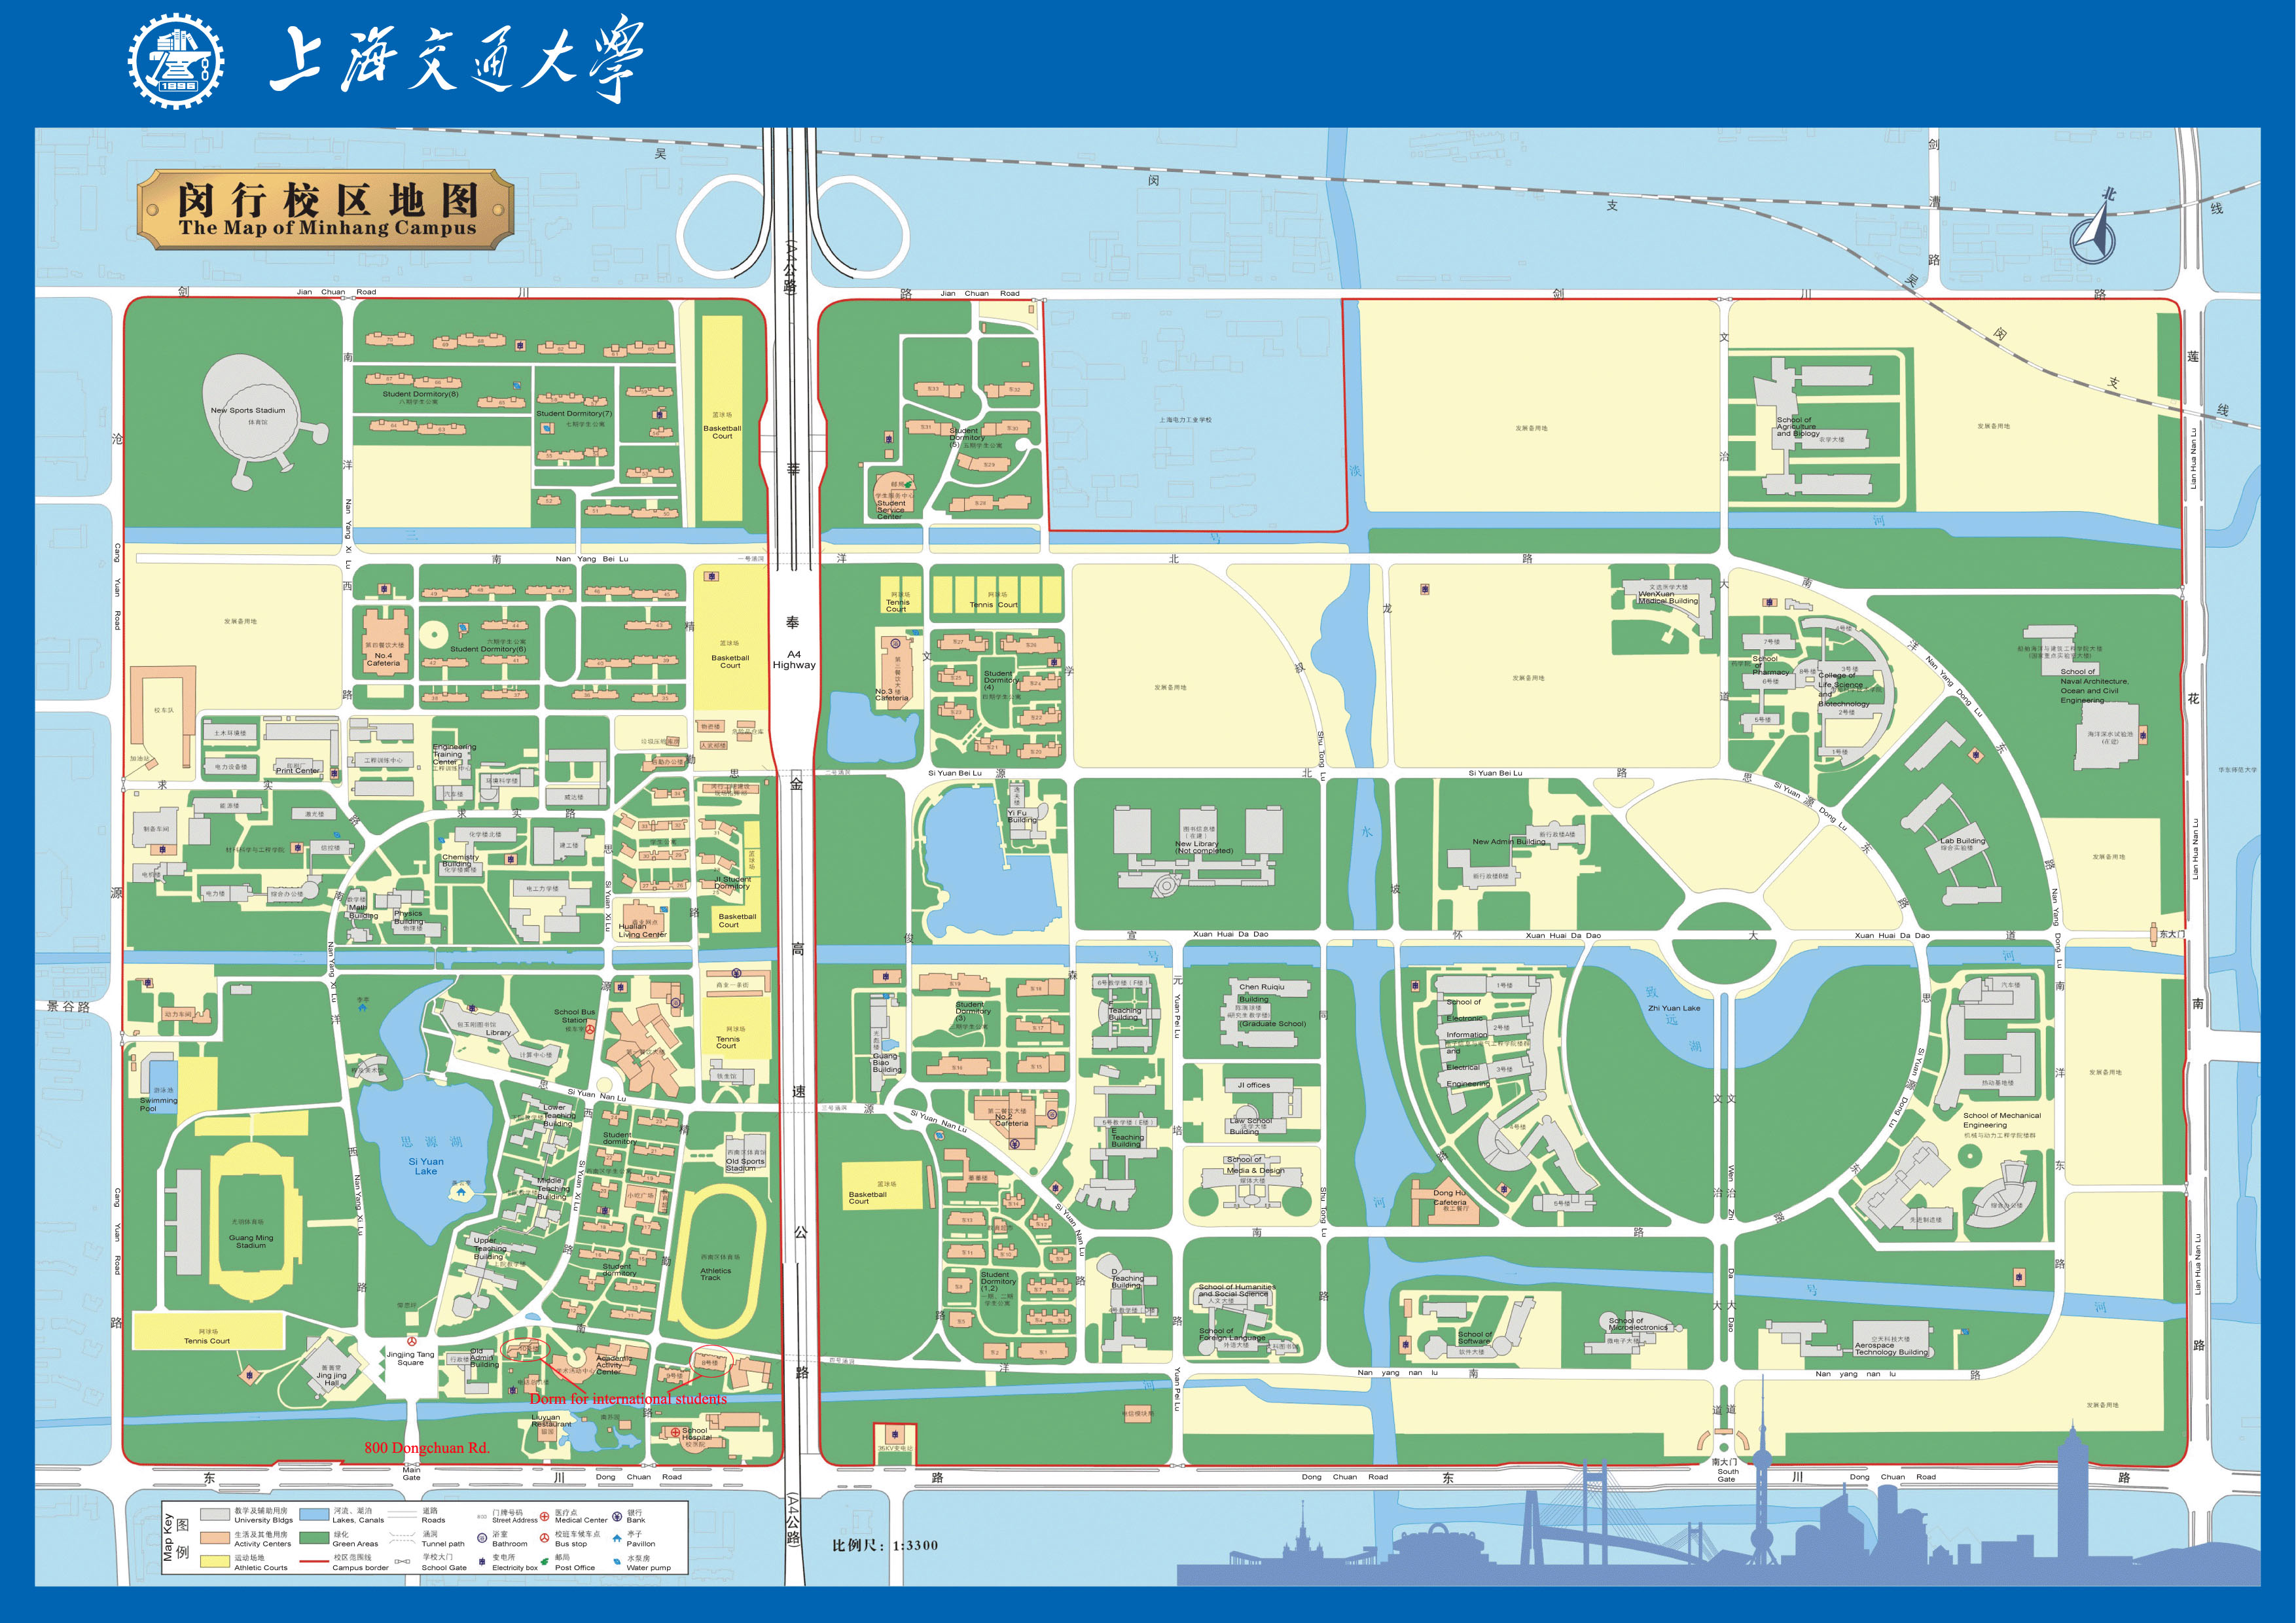 East China Normal University In Shanghai Map